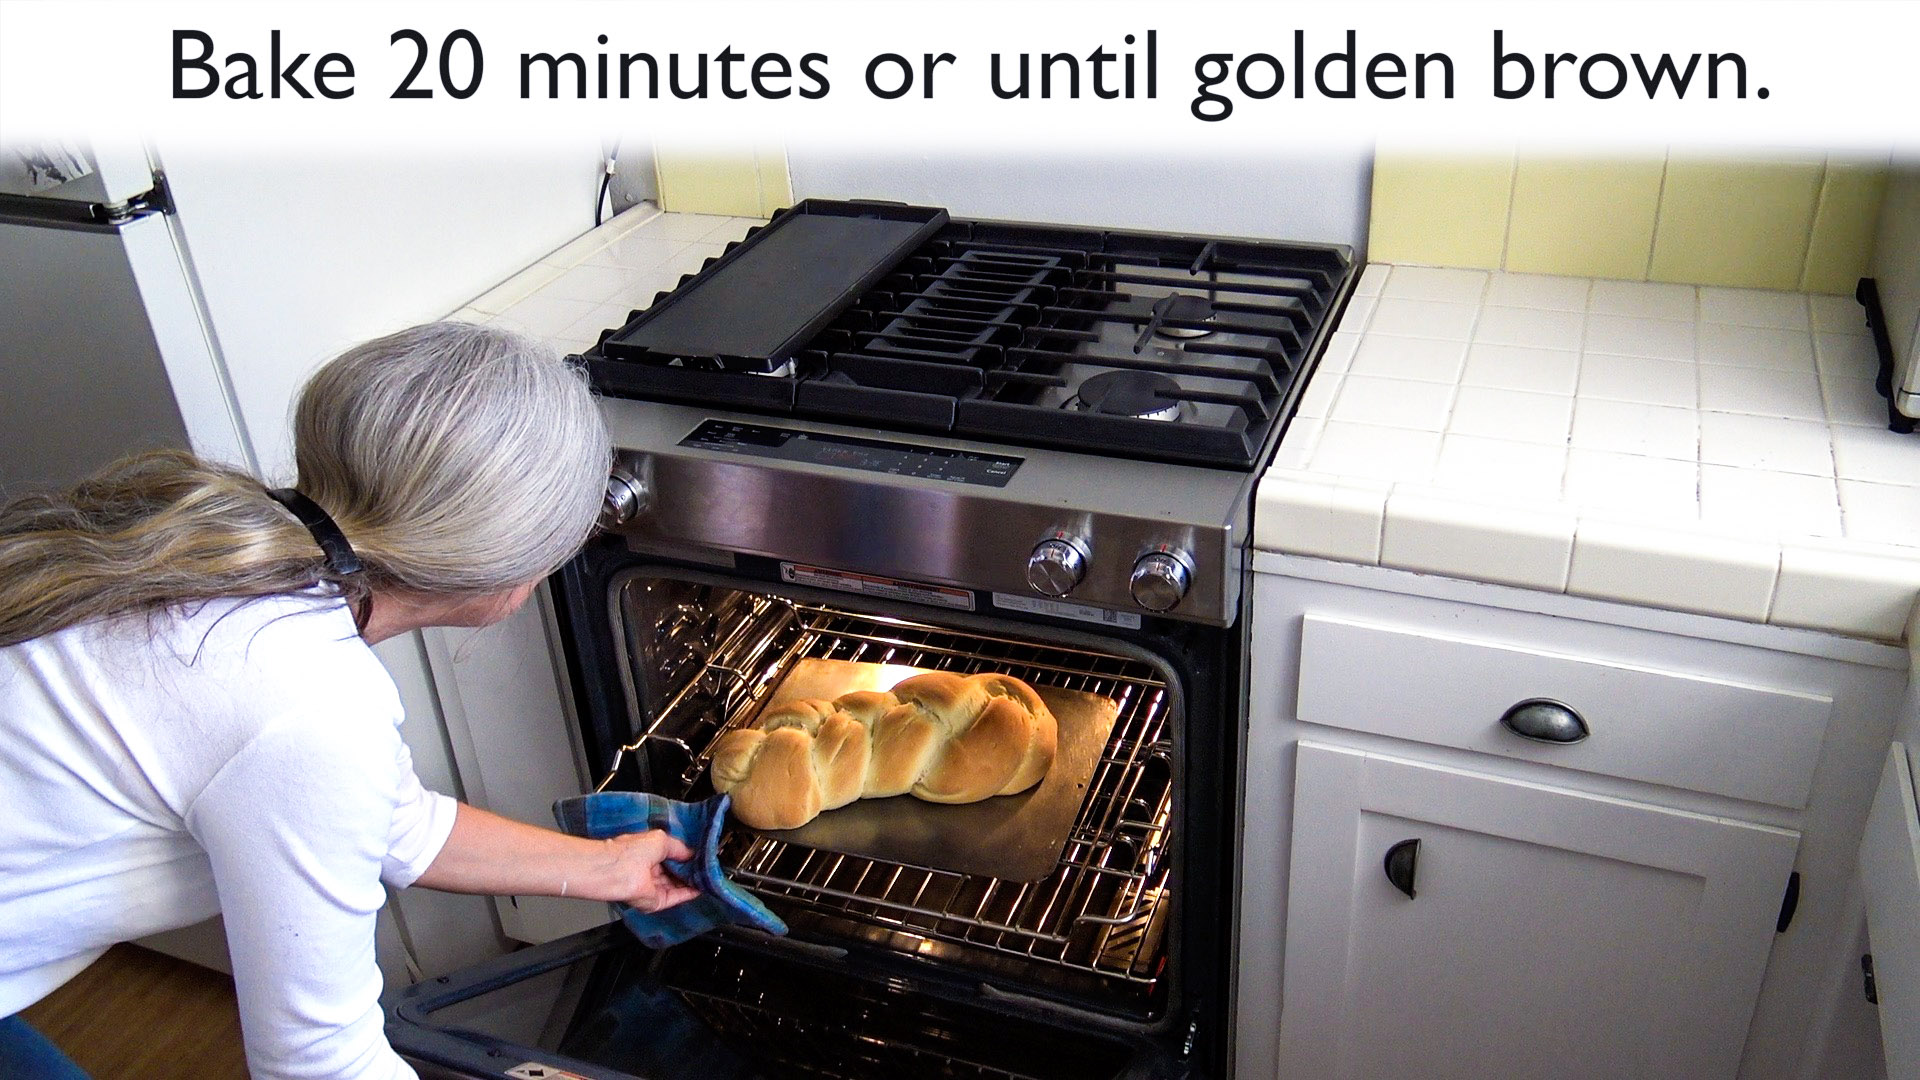 Ben upgrades his mother's oven and shares her bread recipe. Full instructions at HomeMade-Modern.com